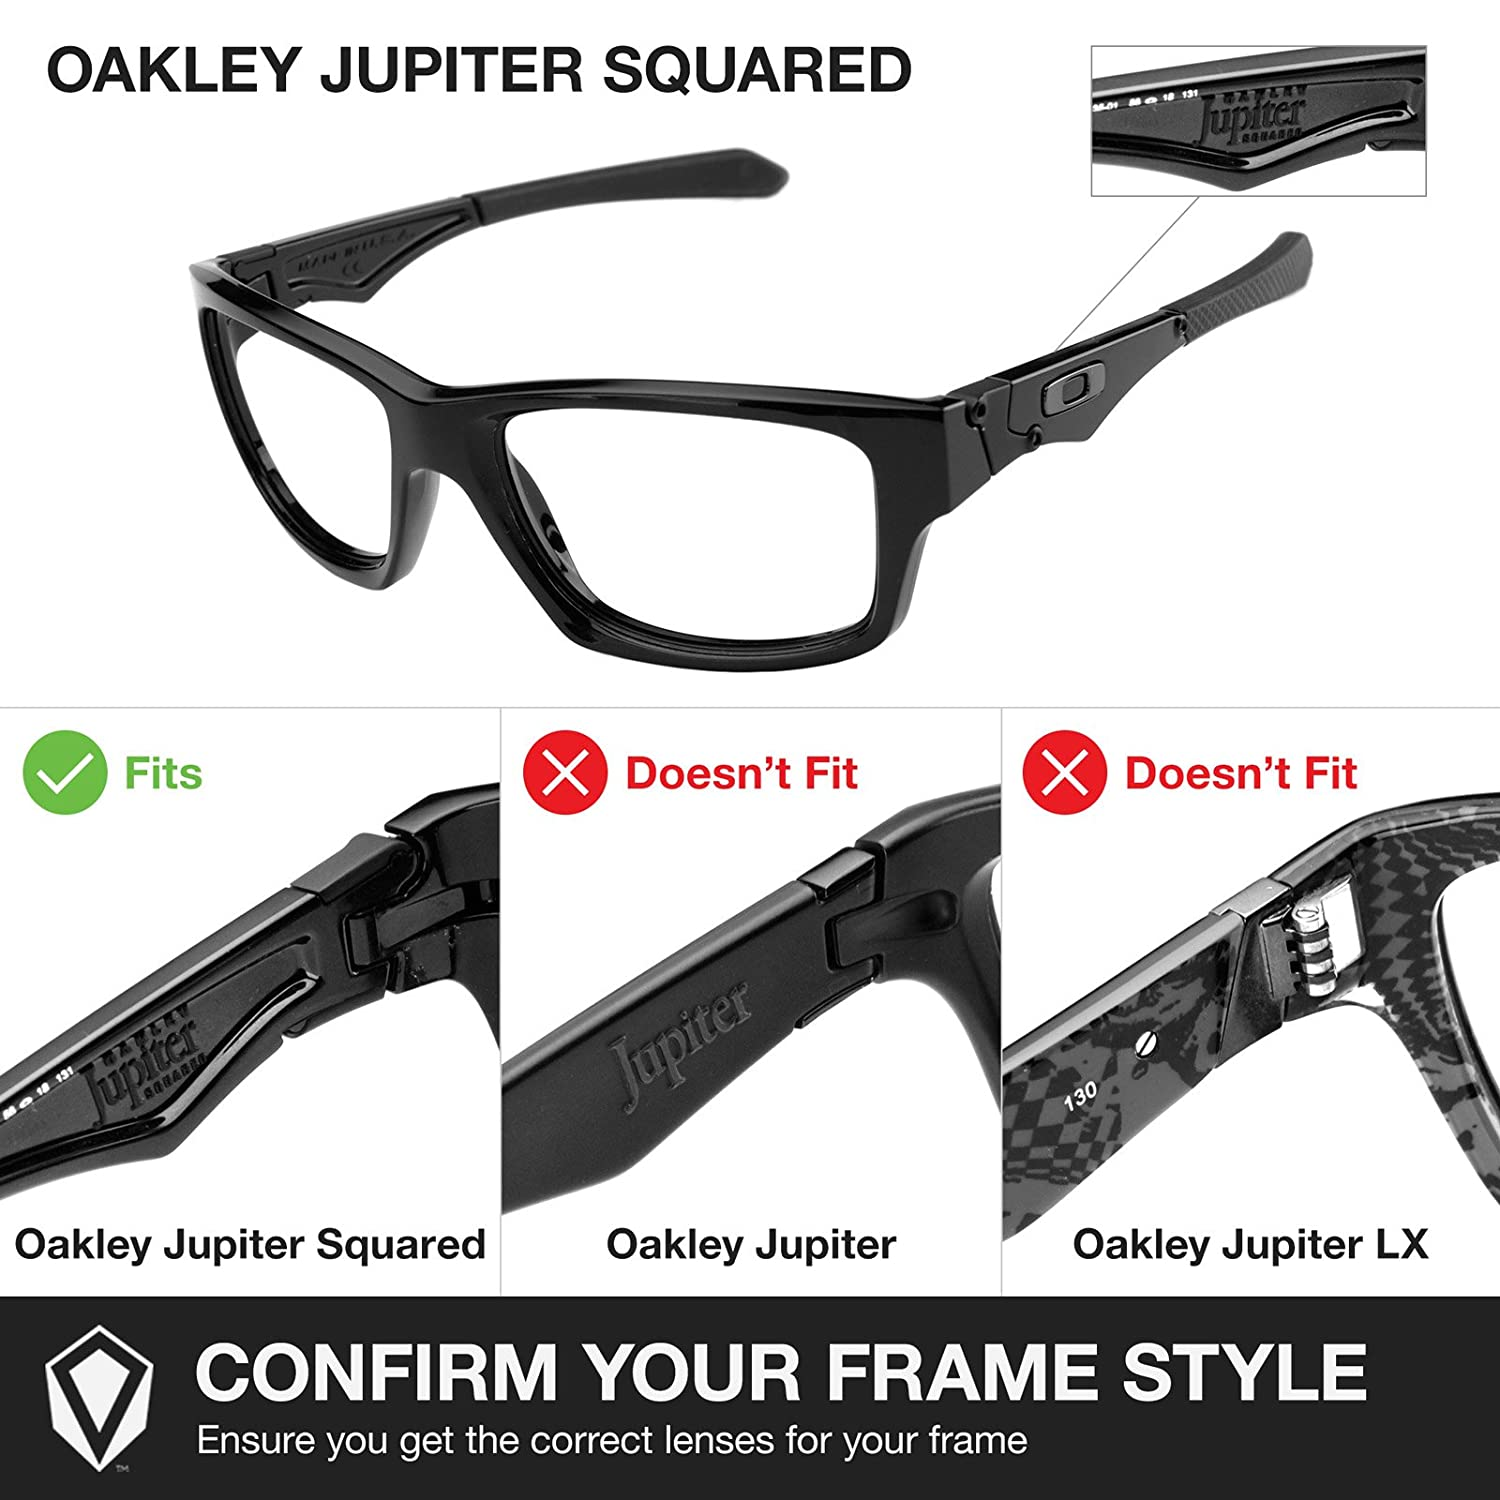 oakley jupiter squared replacement arms